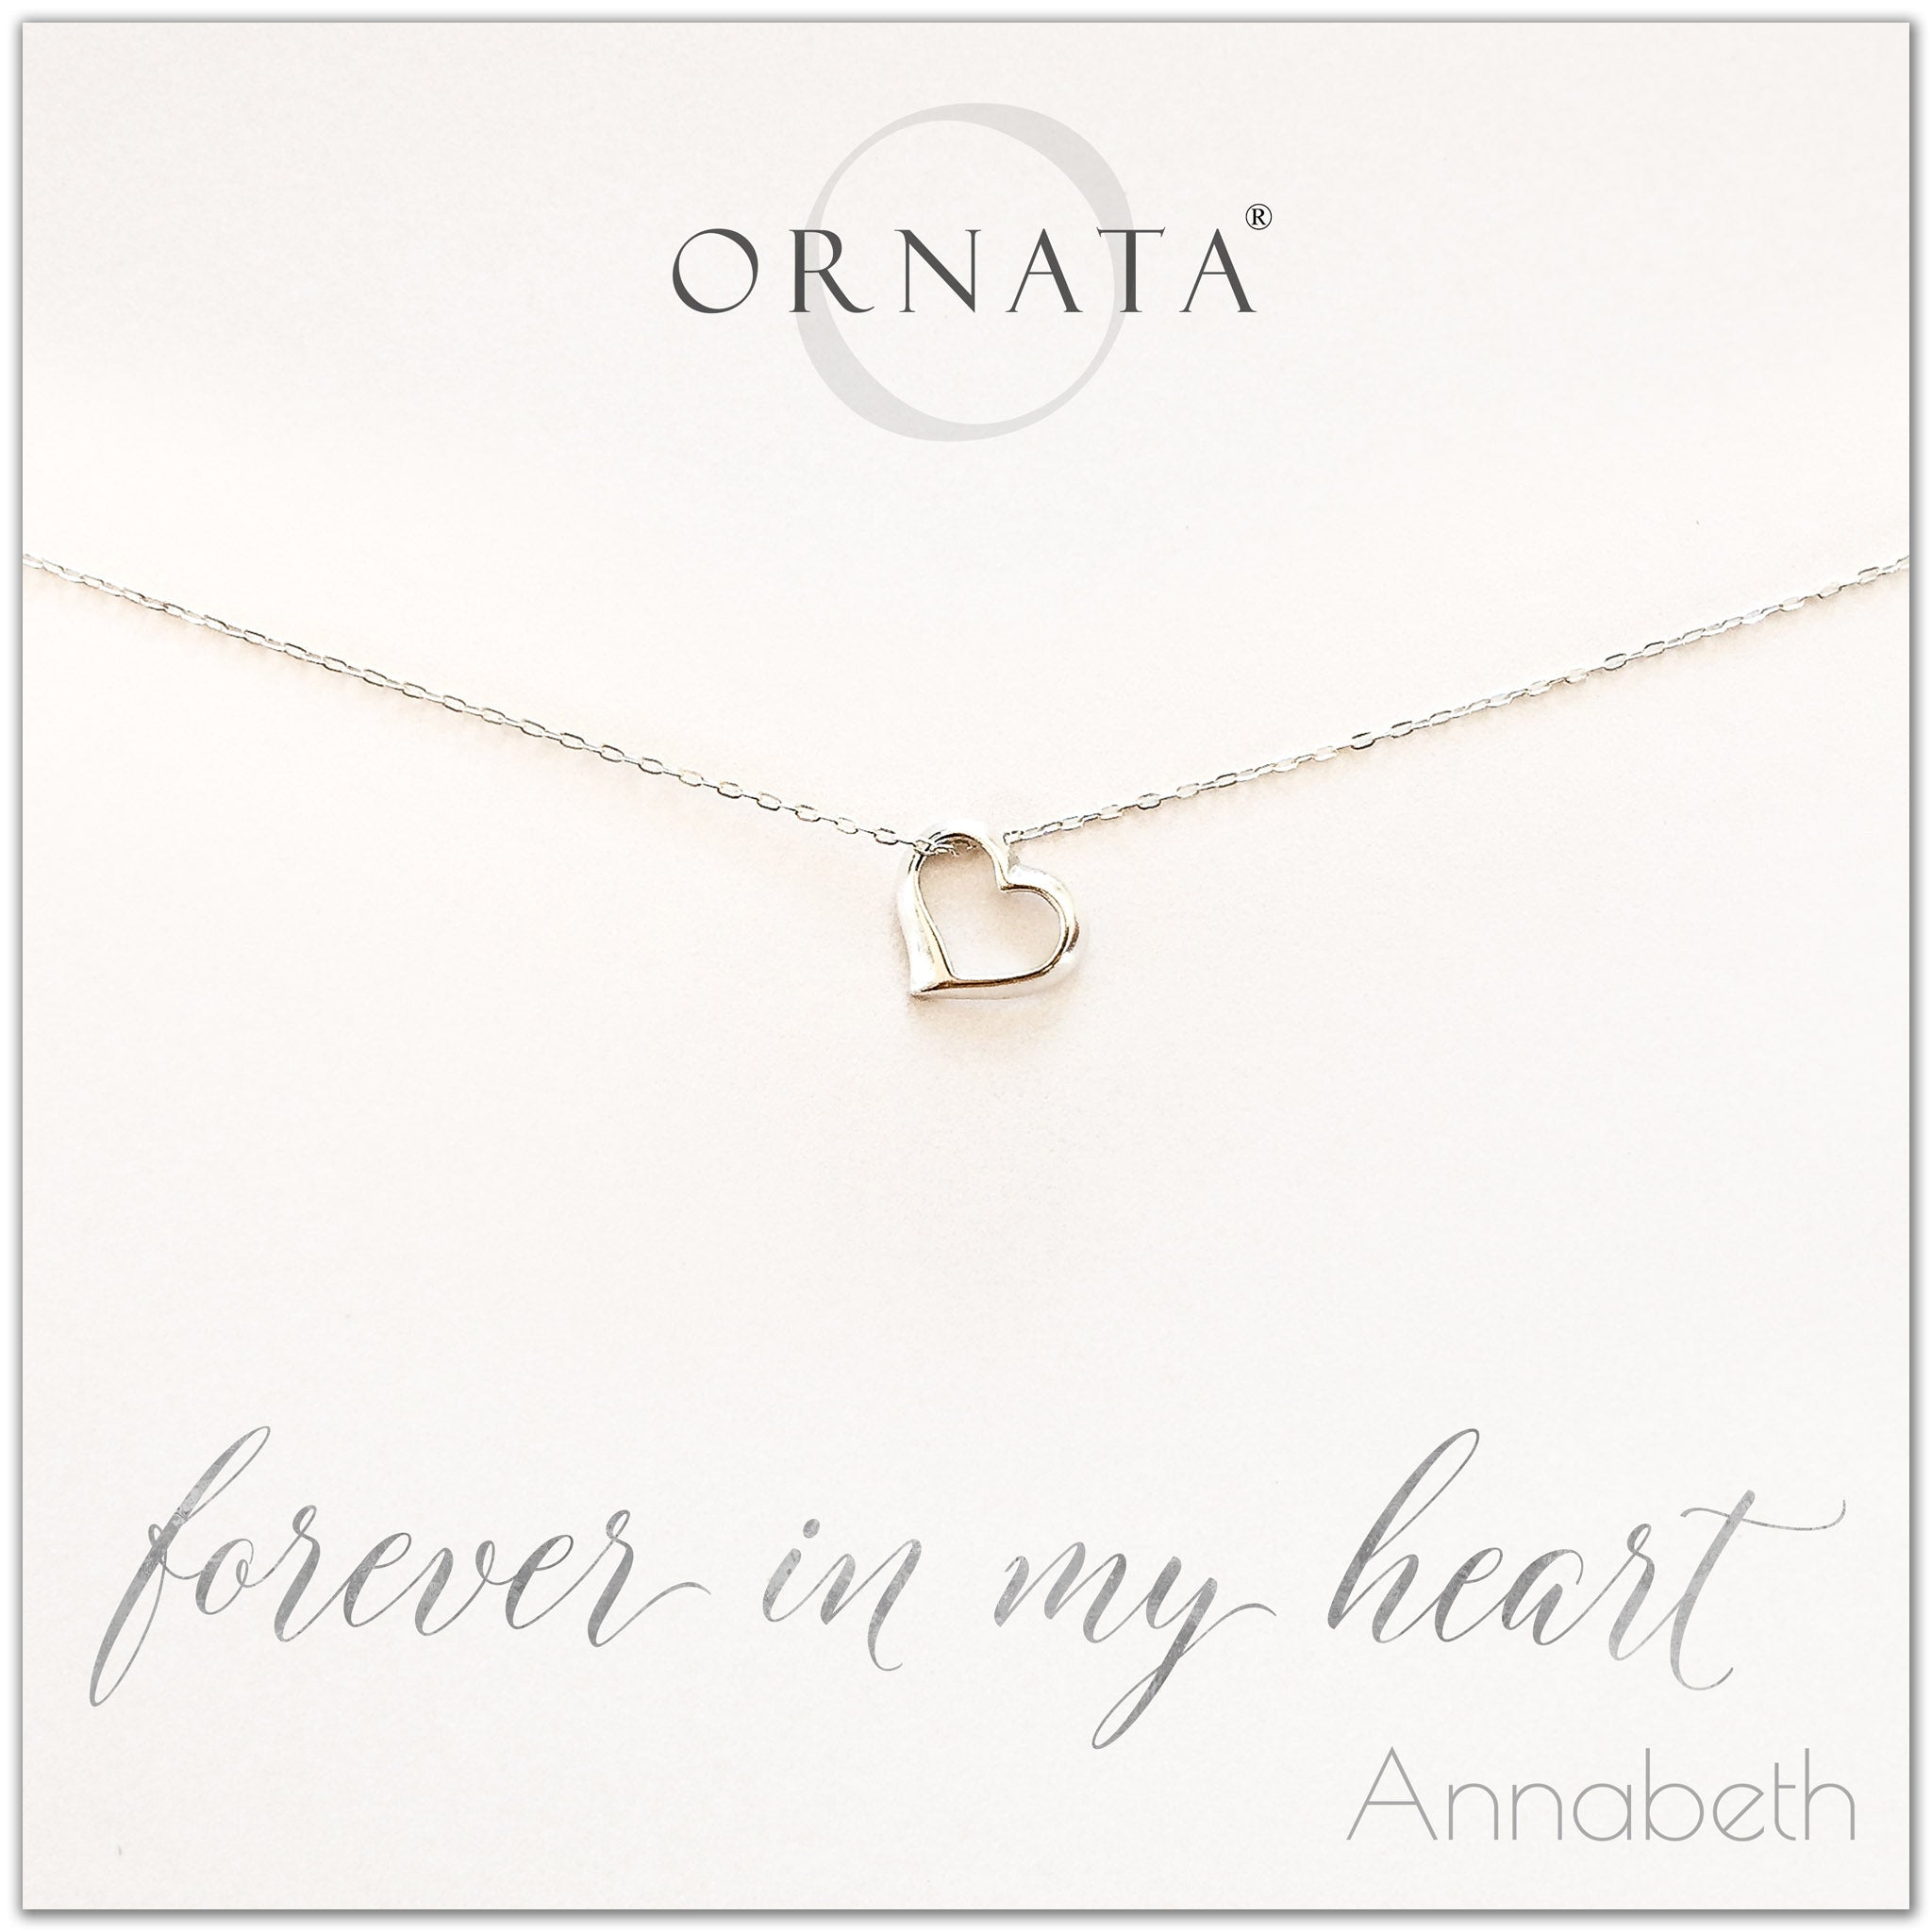 Forever in my heart necklace - personalized silver heart necklace. Our sterling silver custom jewelry is a perfect gift for girlfriends, wives, mothers, nieces, daughters, best friends, sisters, significant others, newlyweds, and soul mates - symbolic heart necklace to show your love.